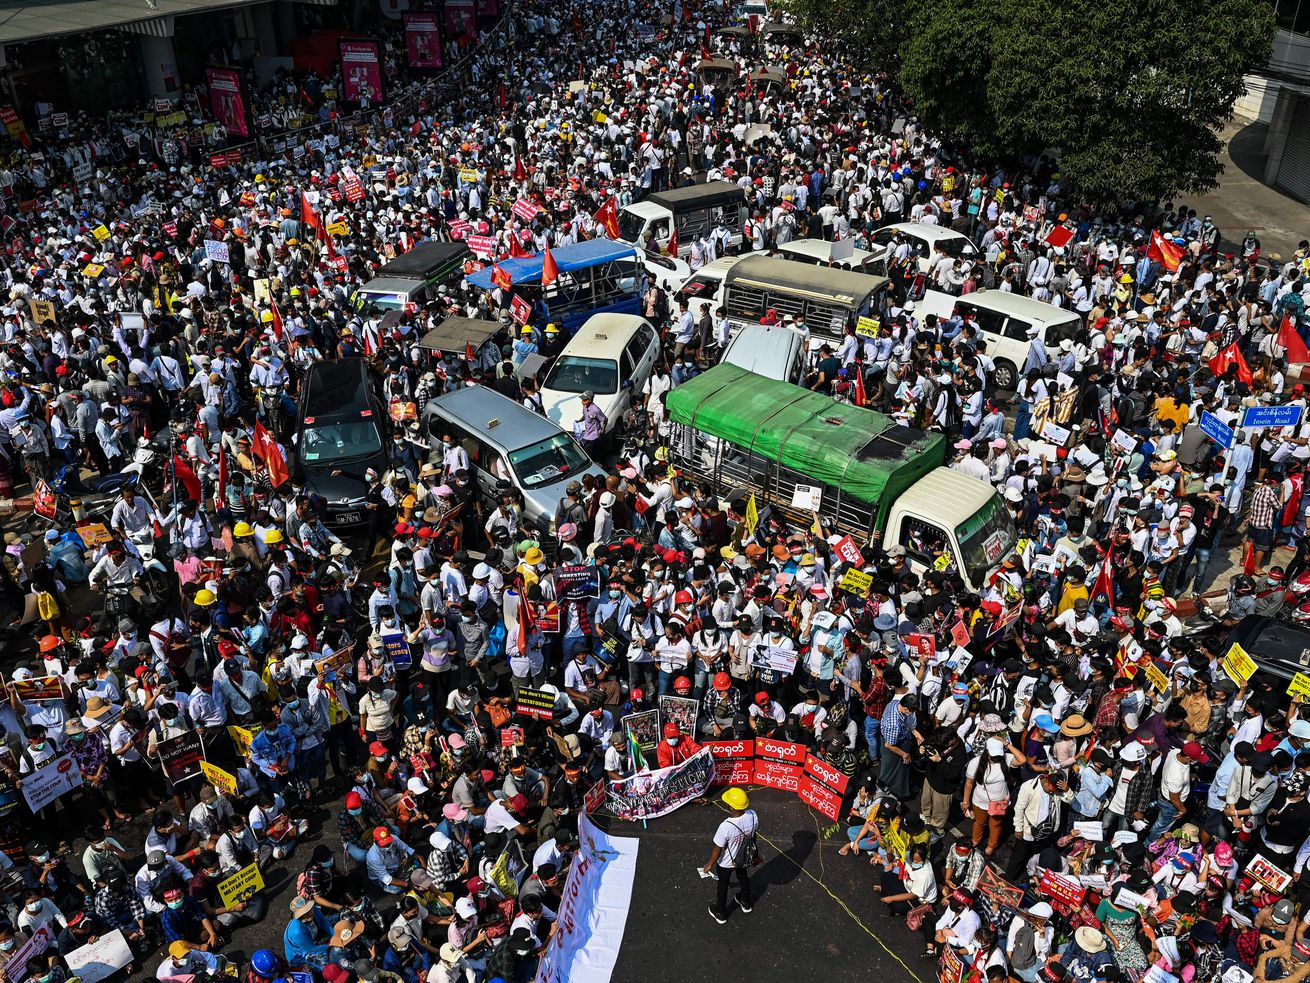 Aerial photo of a street crowded with protesters.